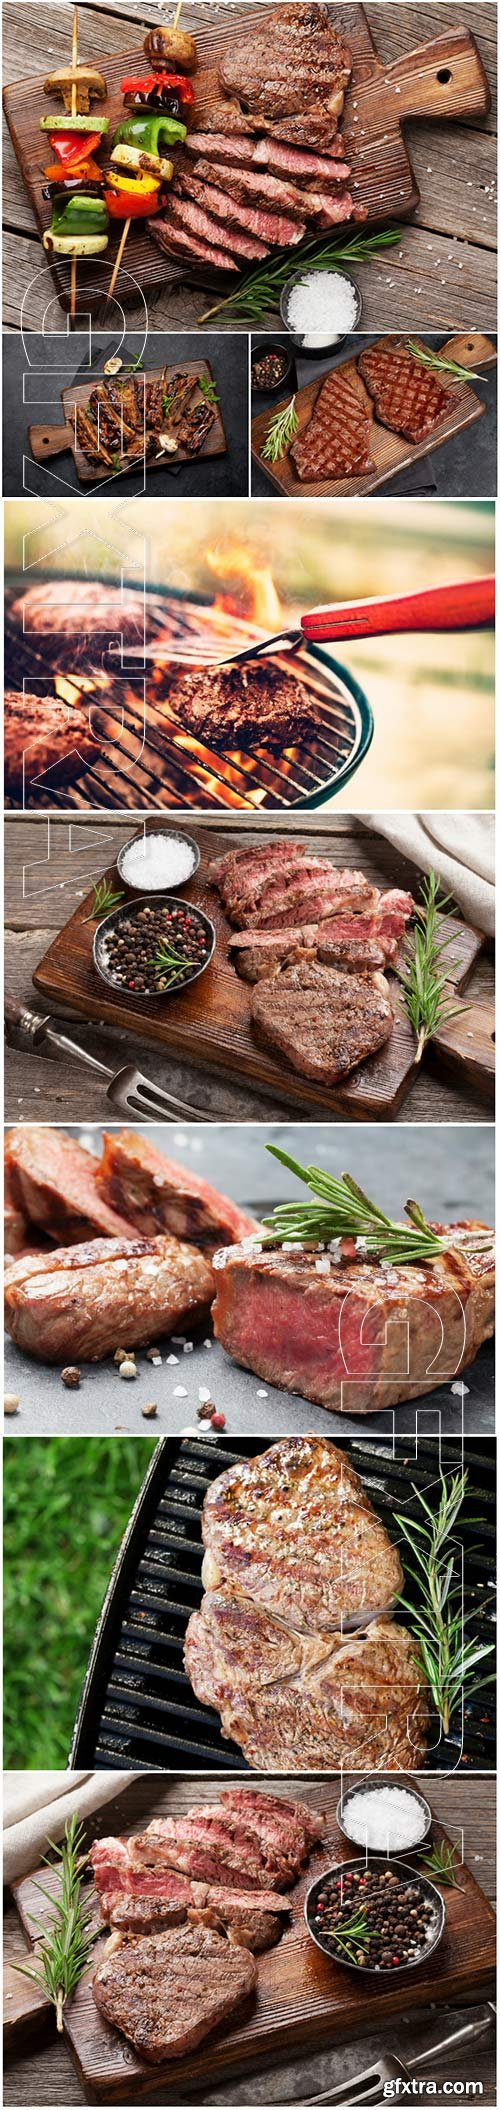 Meat, barbecue stock photo